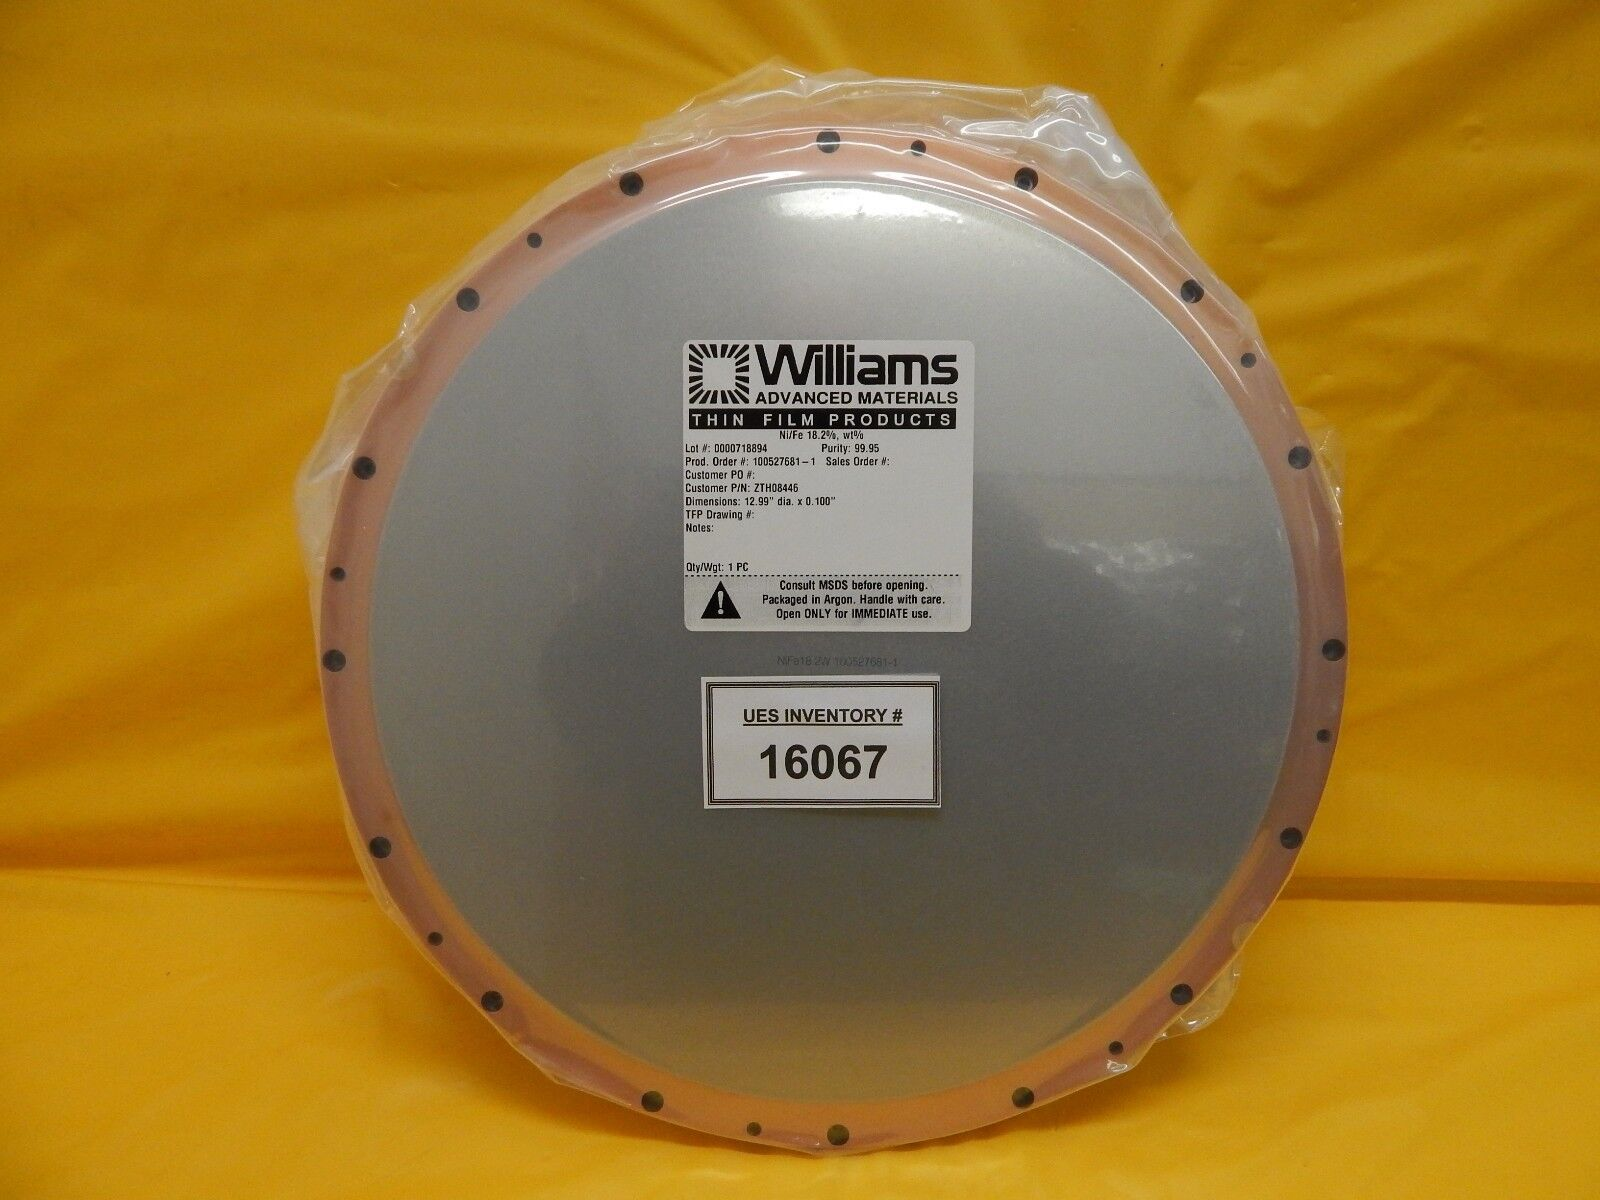 Williams Advanced Materials ZTH08446 Ni/Fe 18.2% wt% Target New Surplus